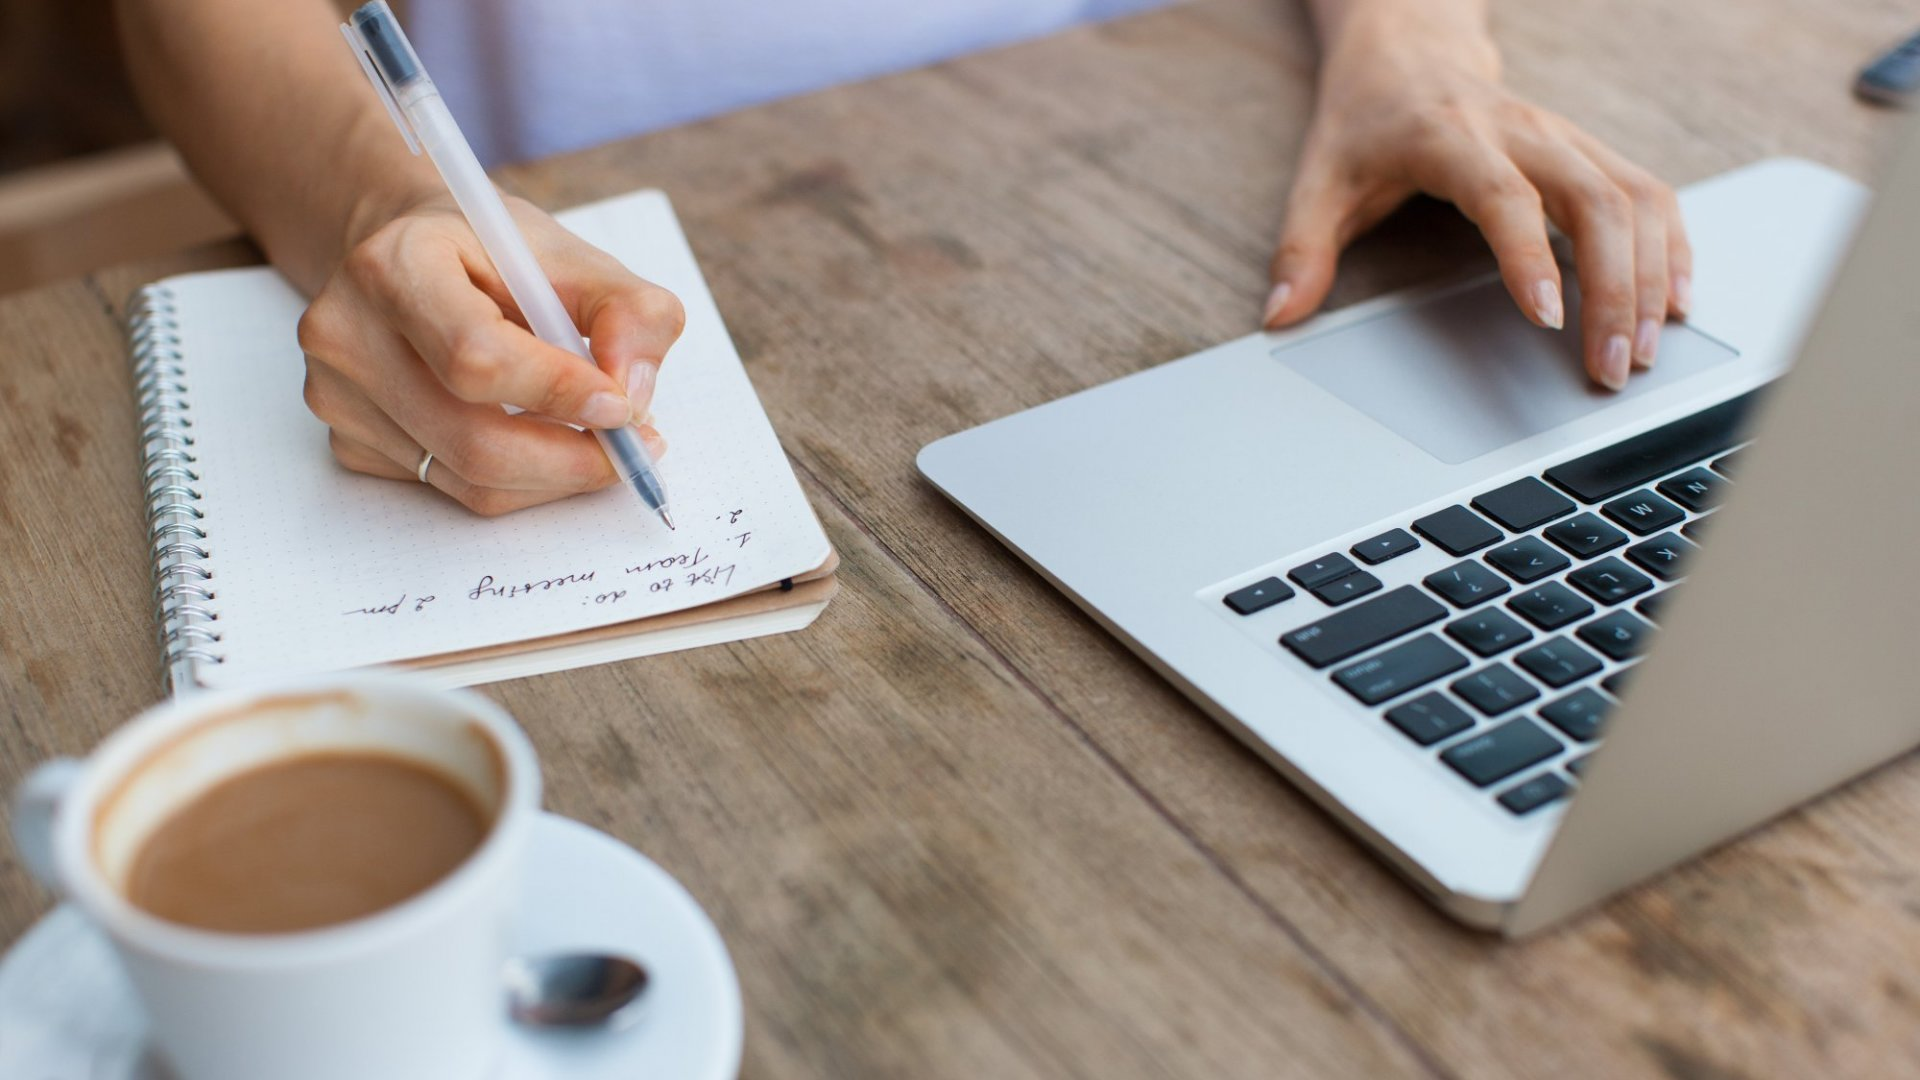 Make Your Daily To-Do List Manageable by Organizing It Into These 4 Categories